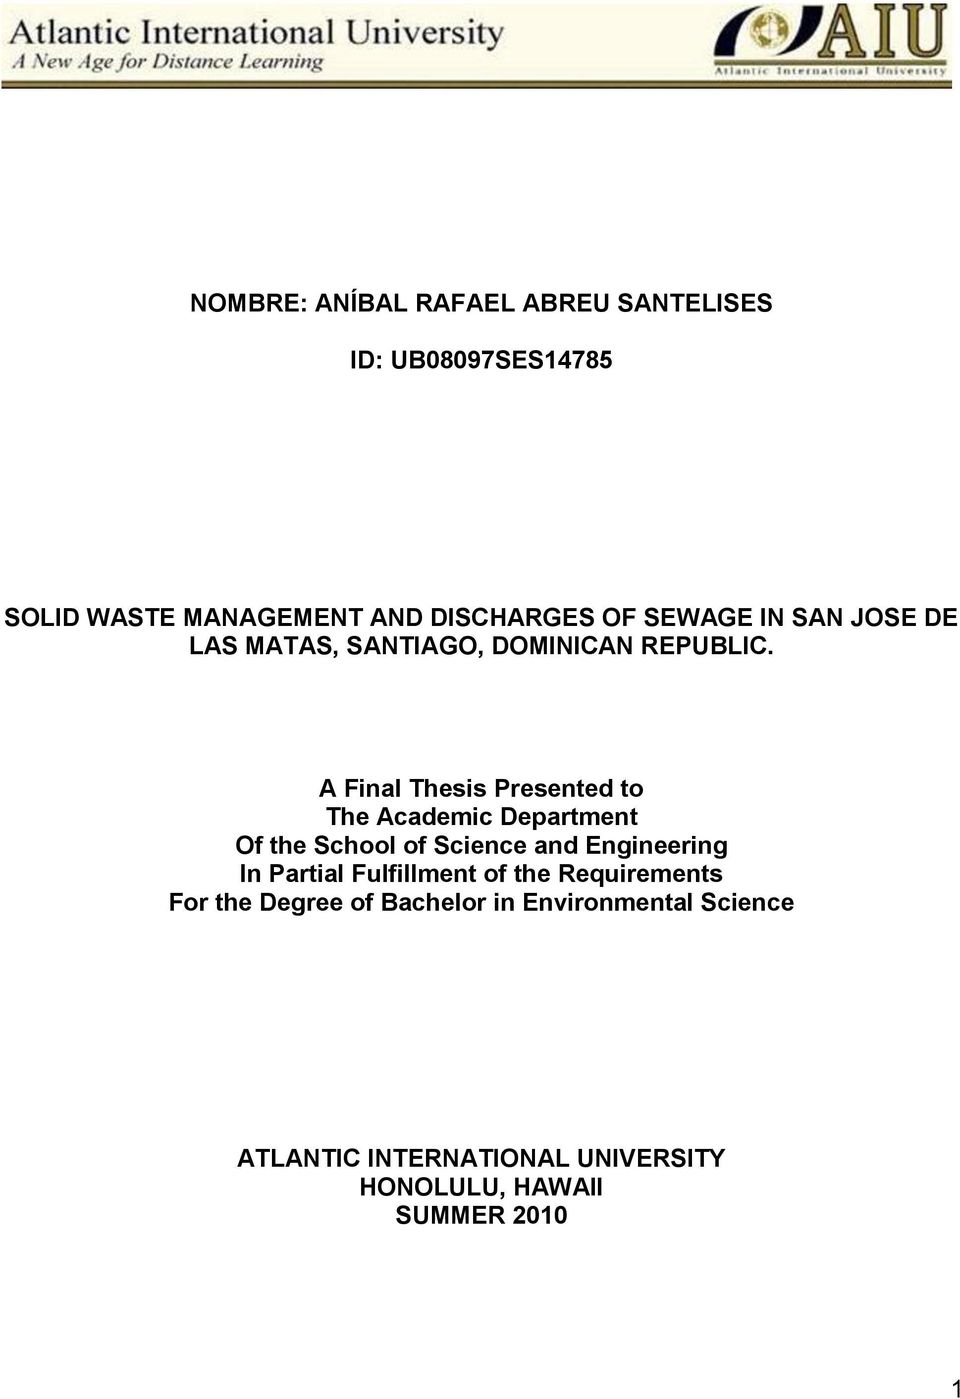 A Final Thesis Presented to The Academic Department Of the School of Science and Engineering In Partial